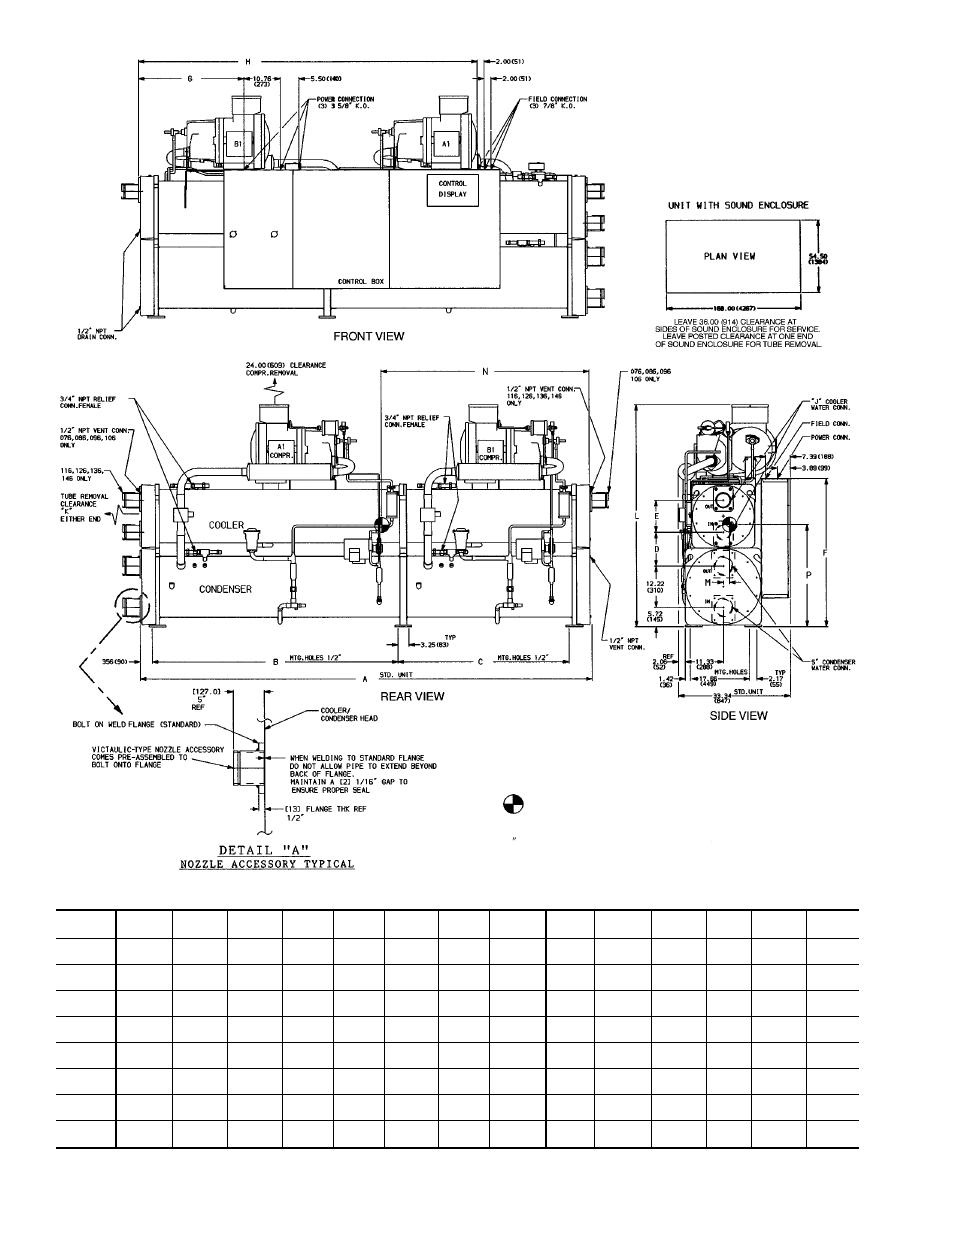 Carrier 30HXA,HXC076-186 Water-Cooled and Condenserless Chillers User Manual    Page 2 / 28